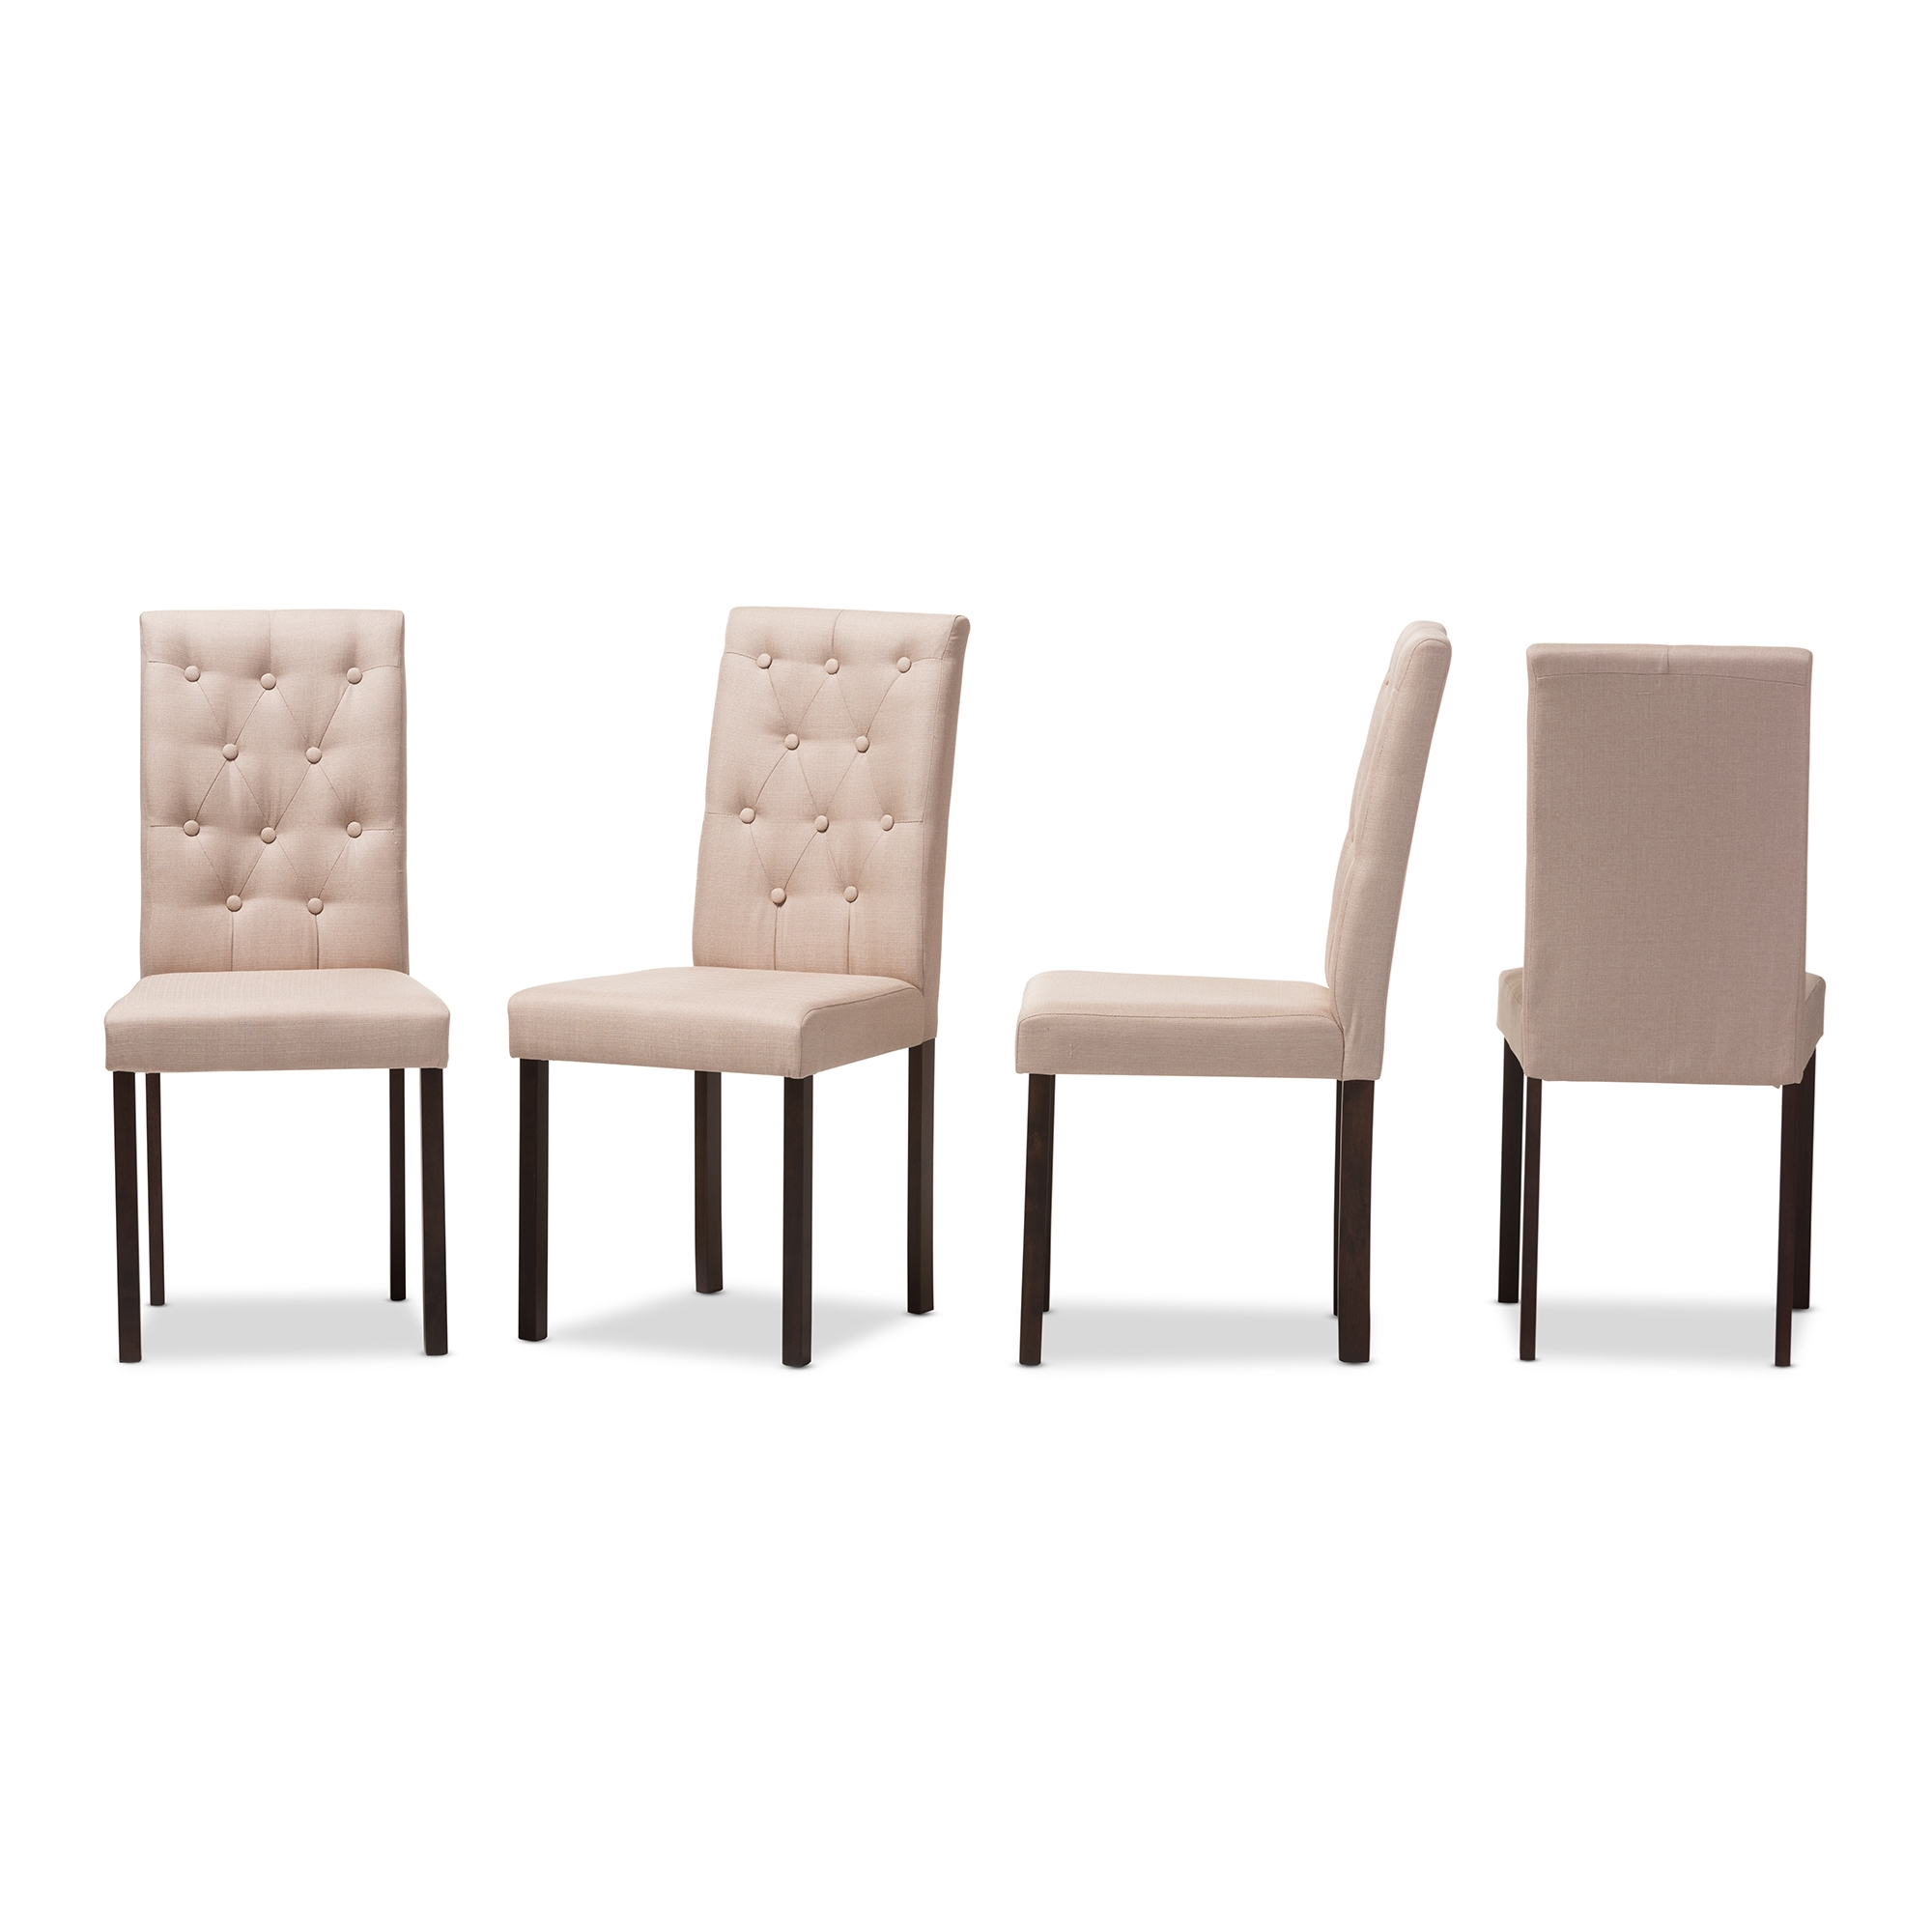 Wholesale Dining Chair | Wholesale Dining Furniture | Wholesale Furniture